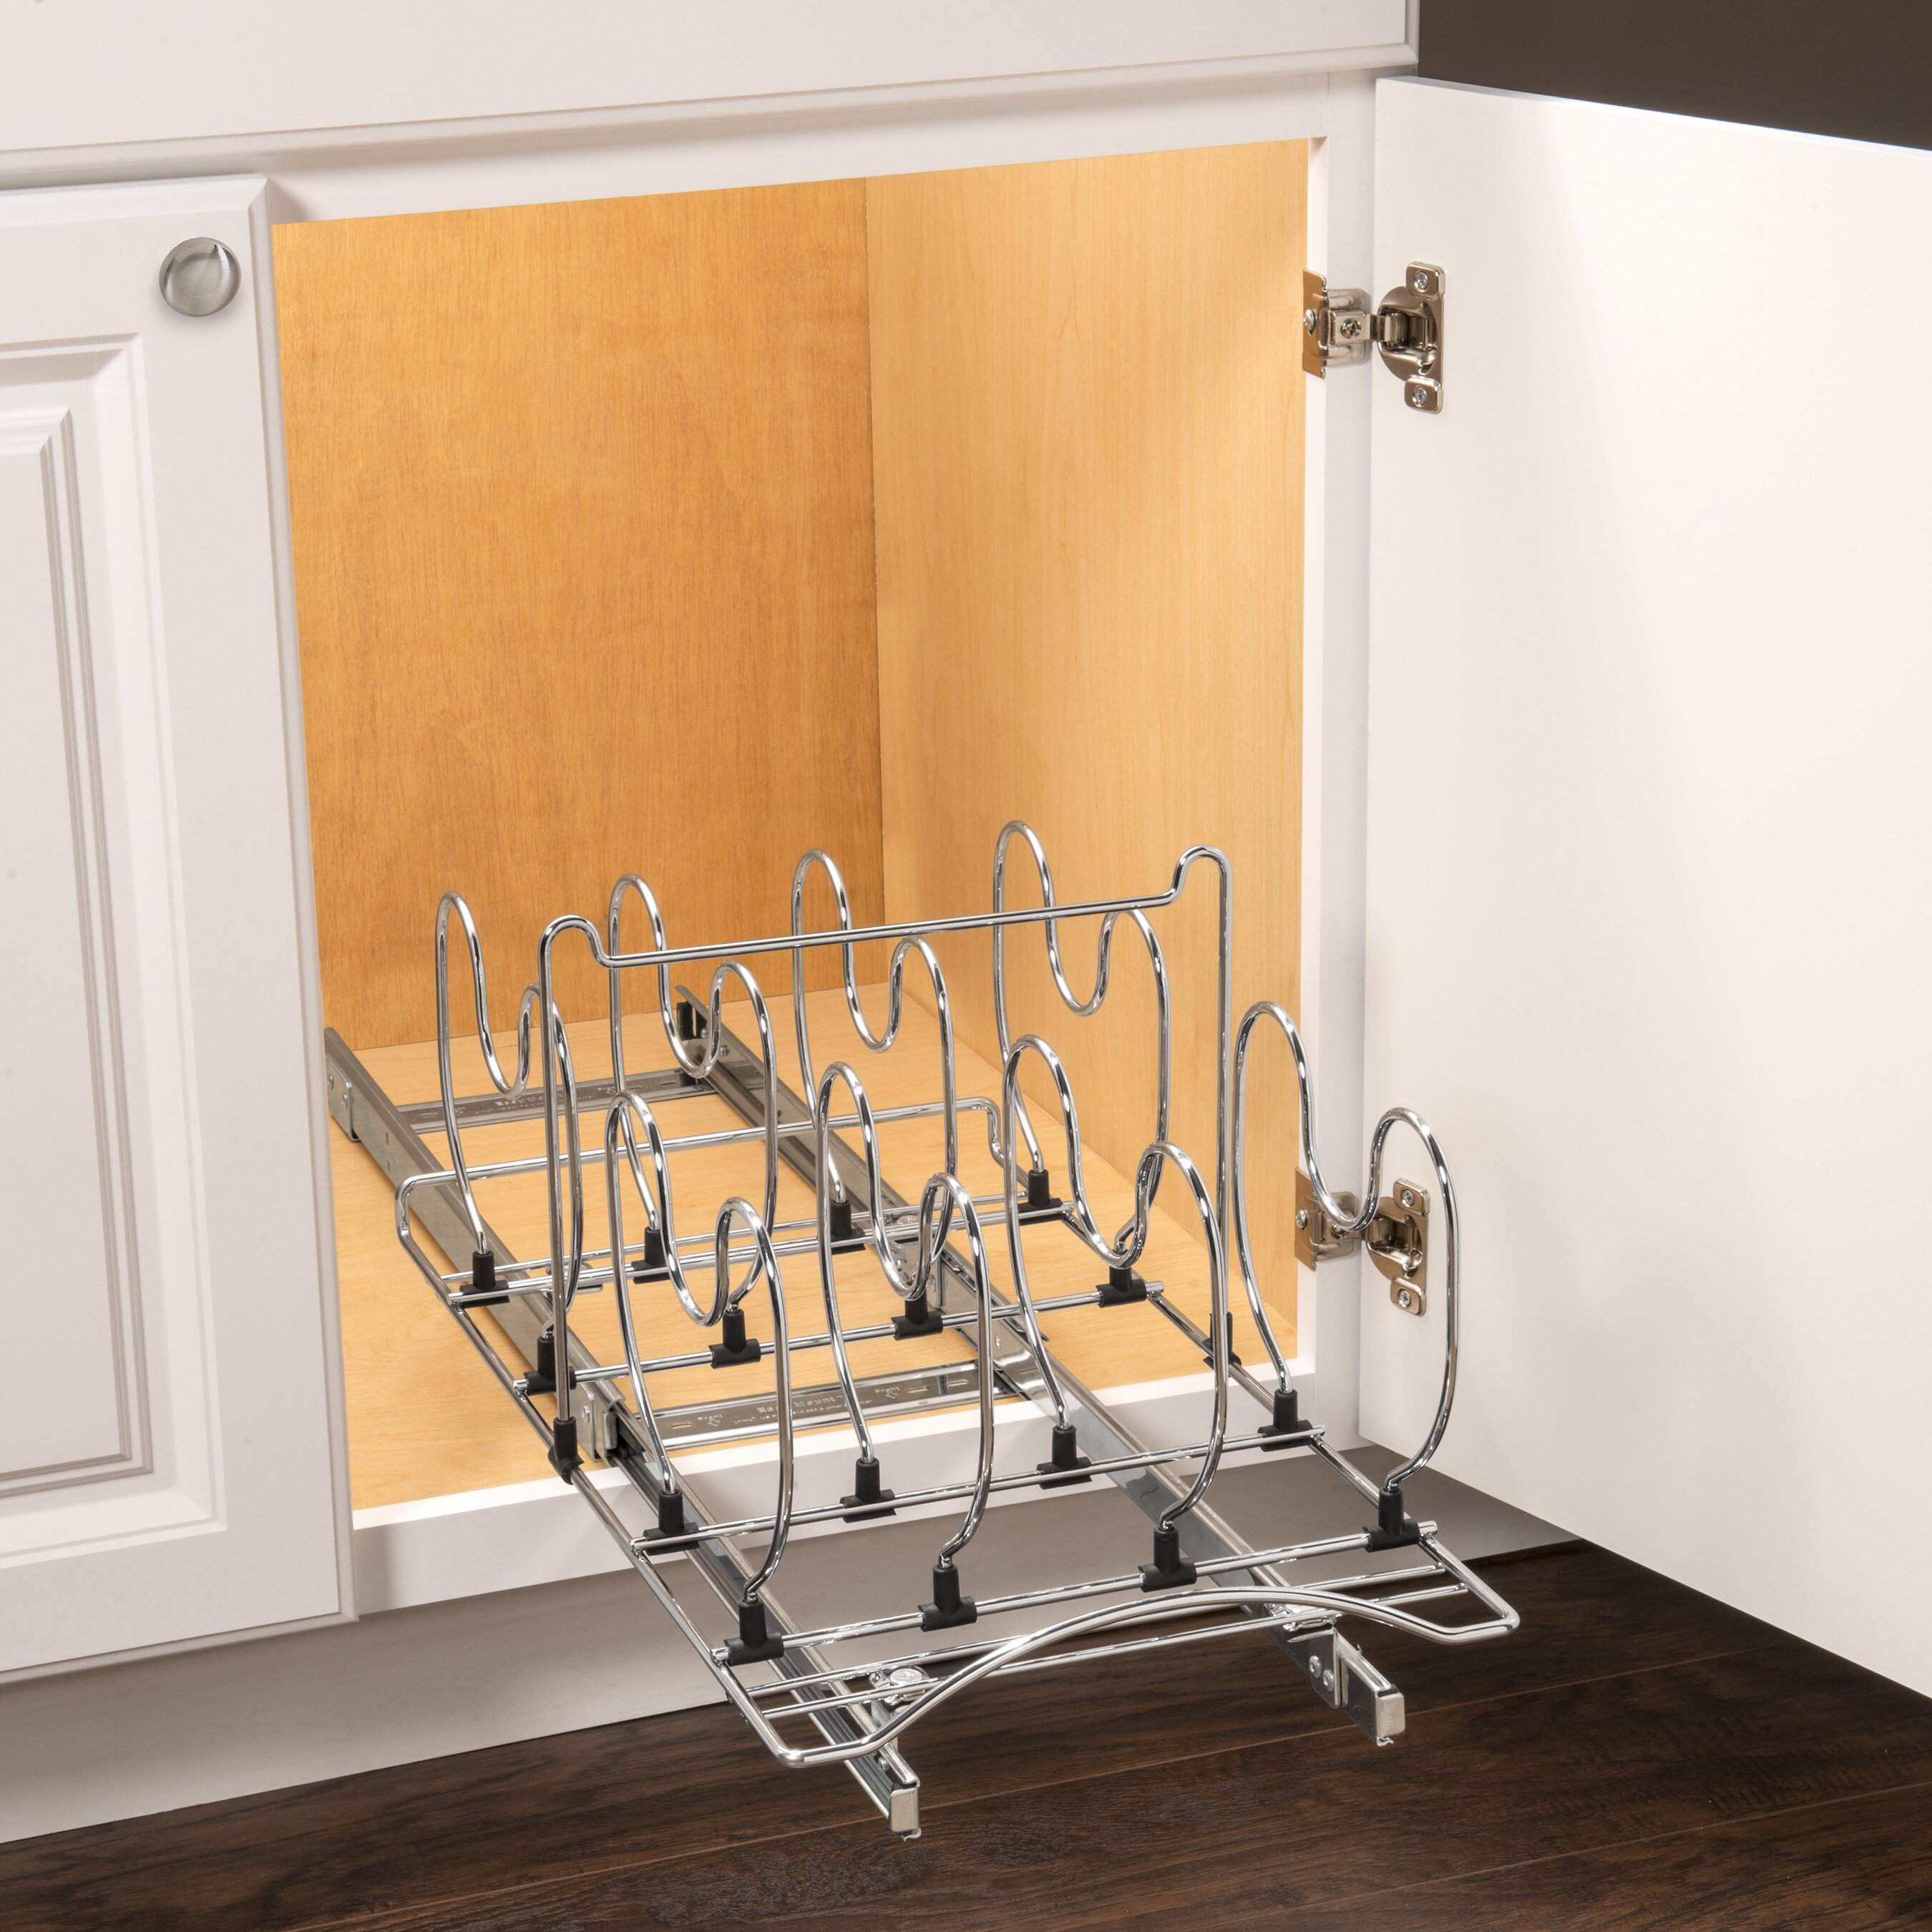 Lynk roll out cookware organizer pull out under cabinet sliding rack 11 inch wide x 21 inch - Cabinet pull out pot rack ...